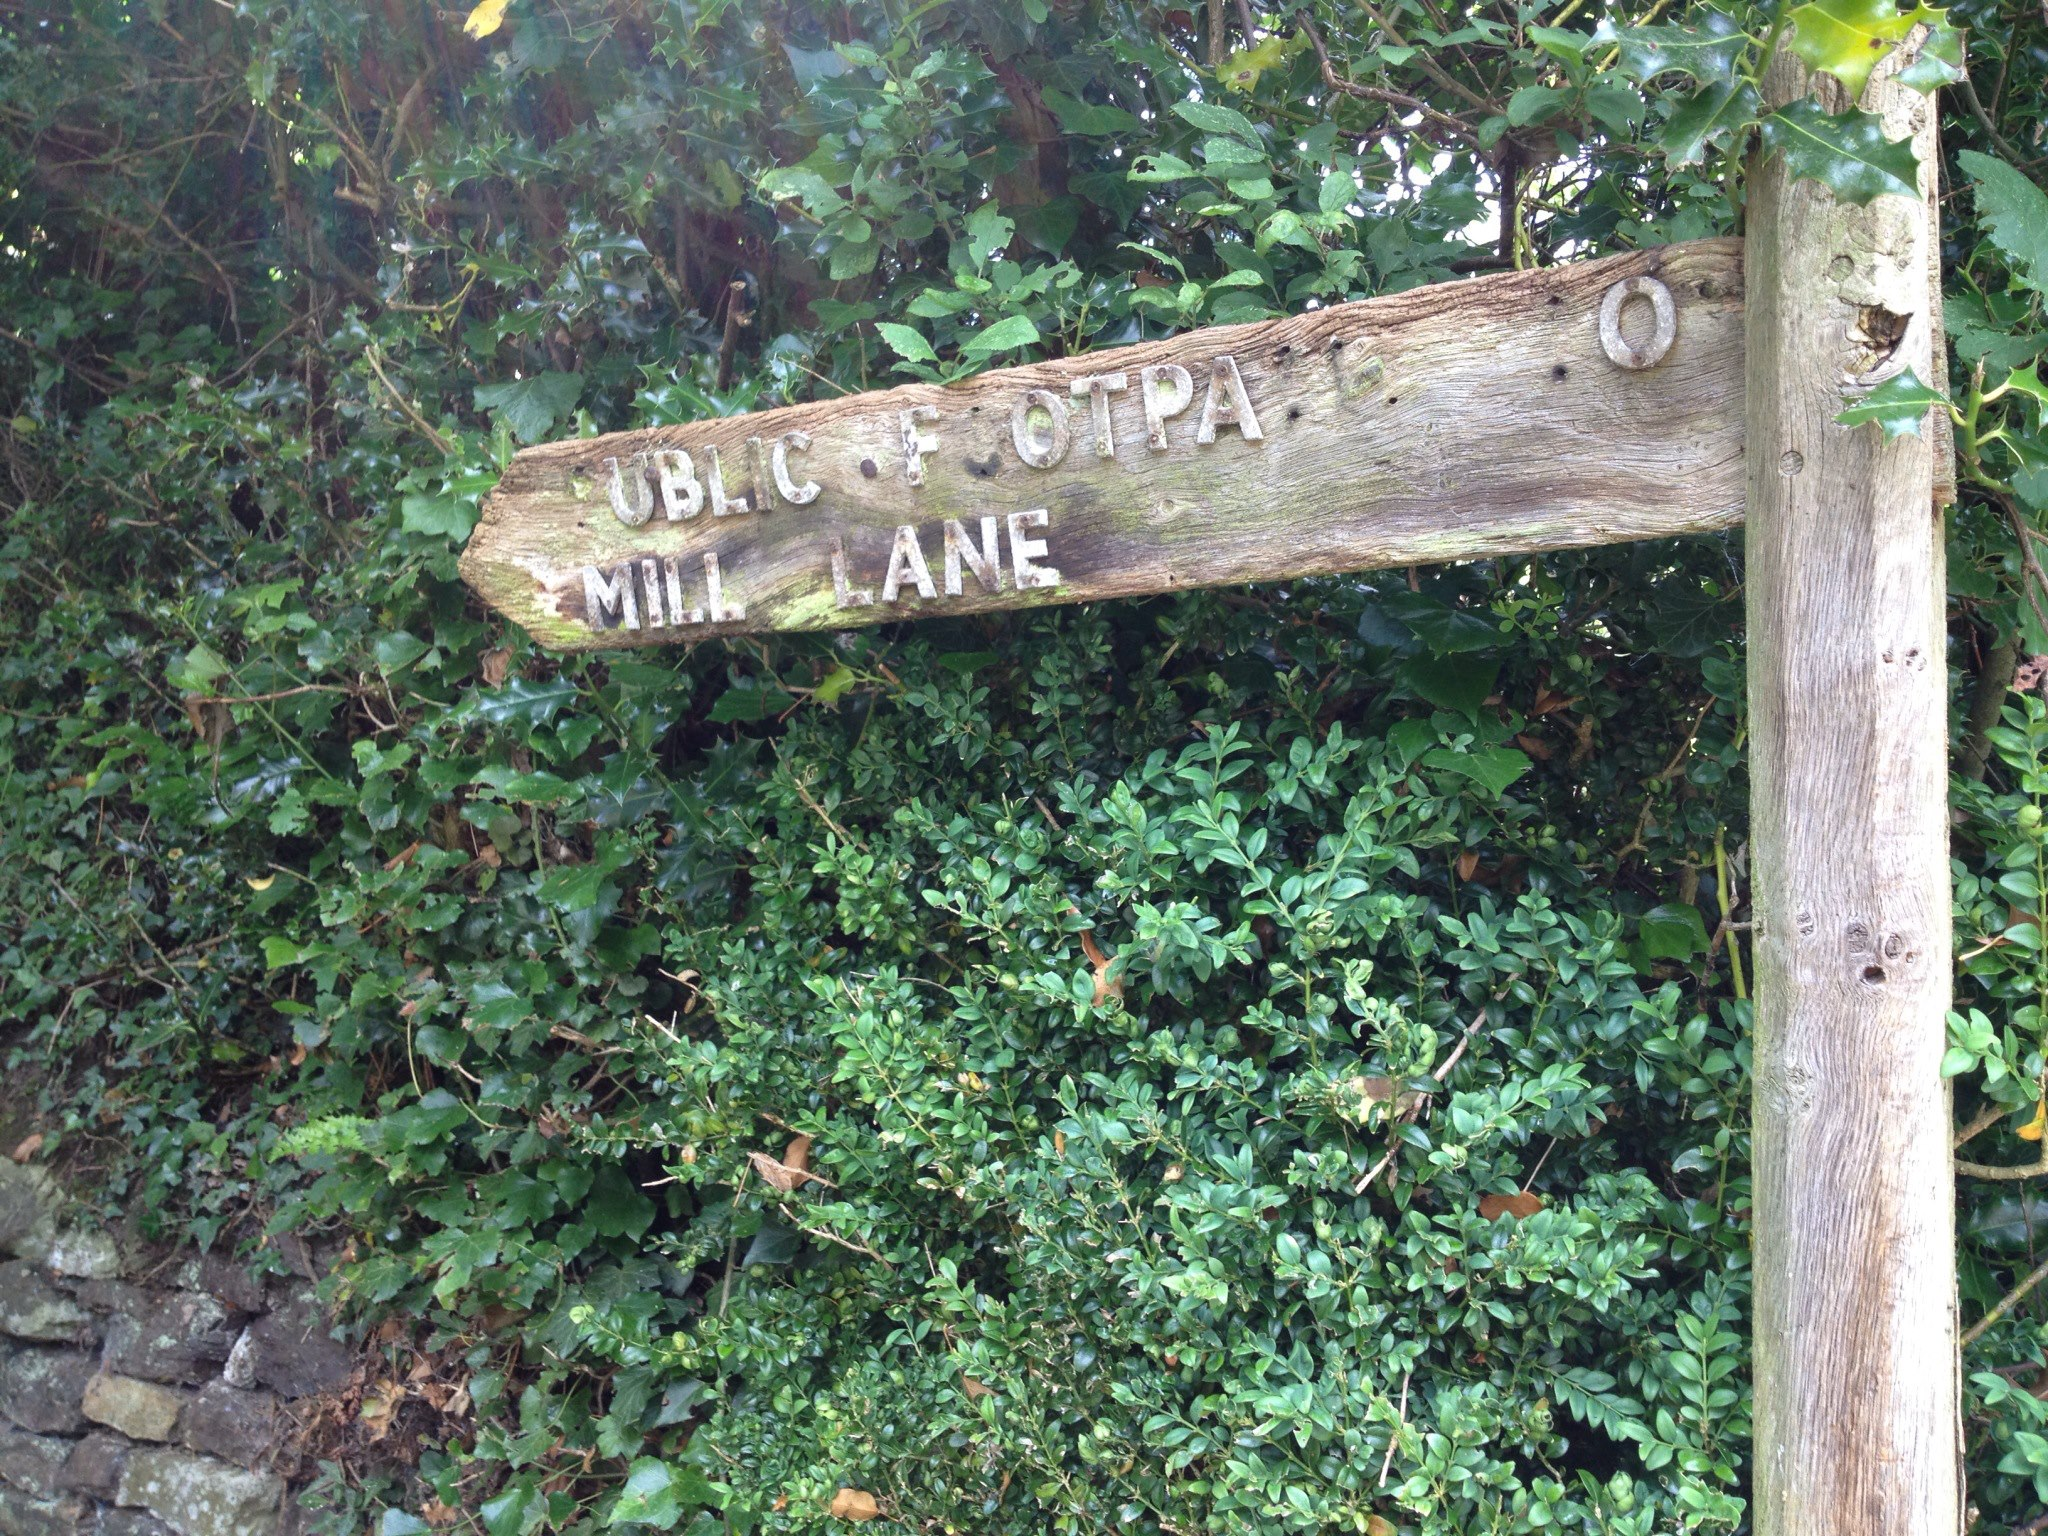 Public footpath sign to Mill Lane